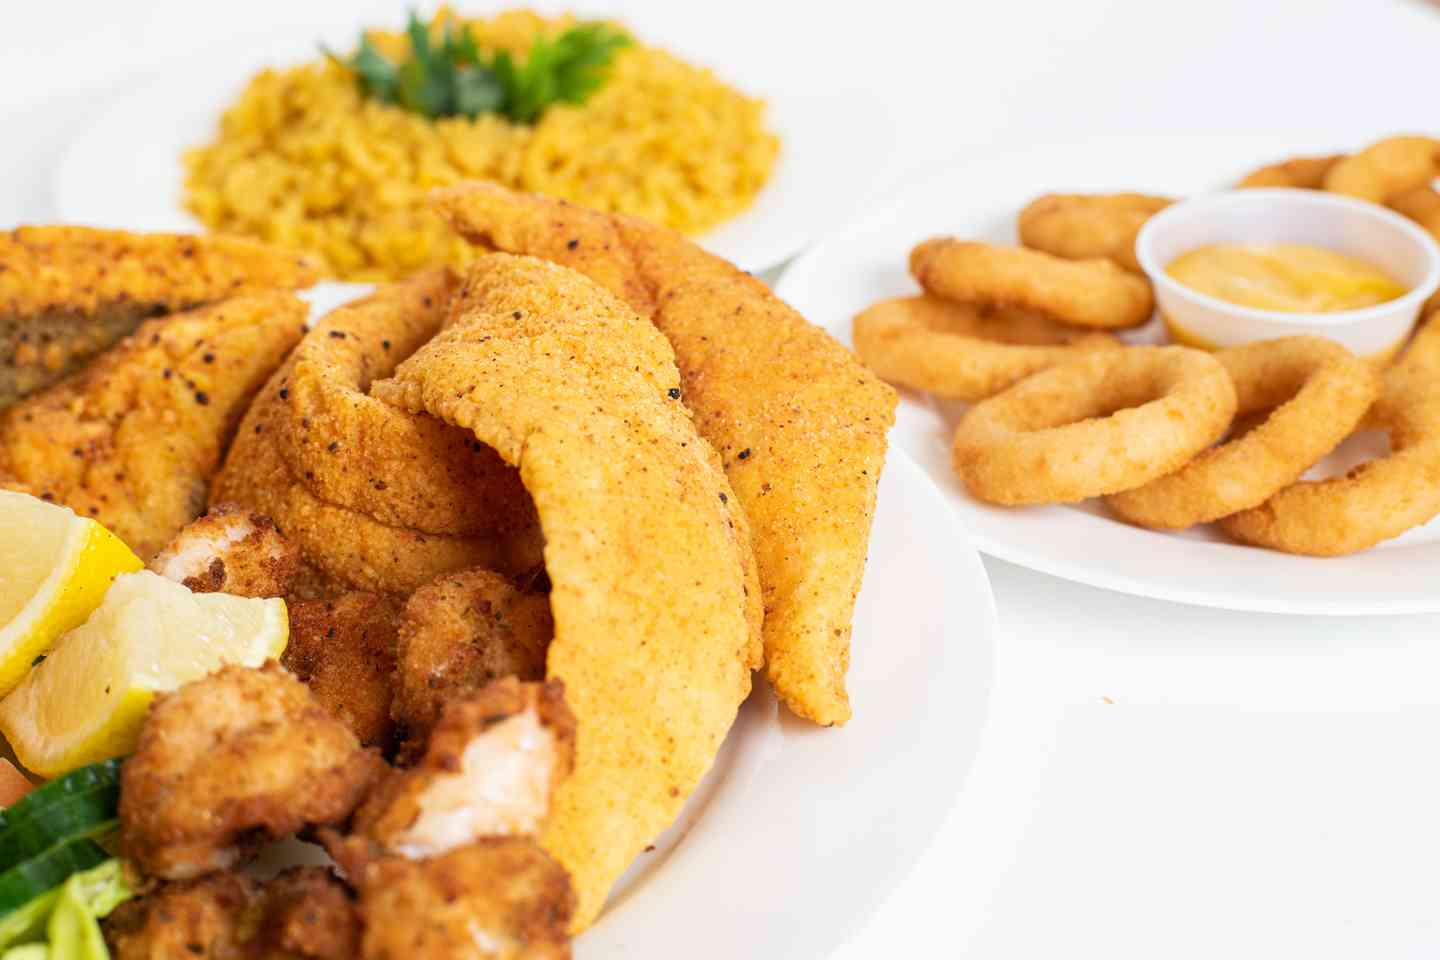 Family pack of chicken, fish, onion rings and rice